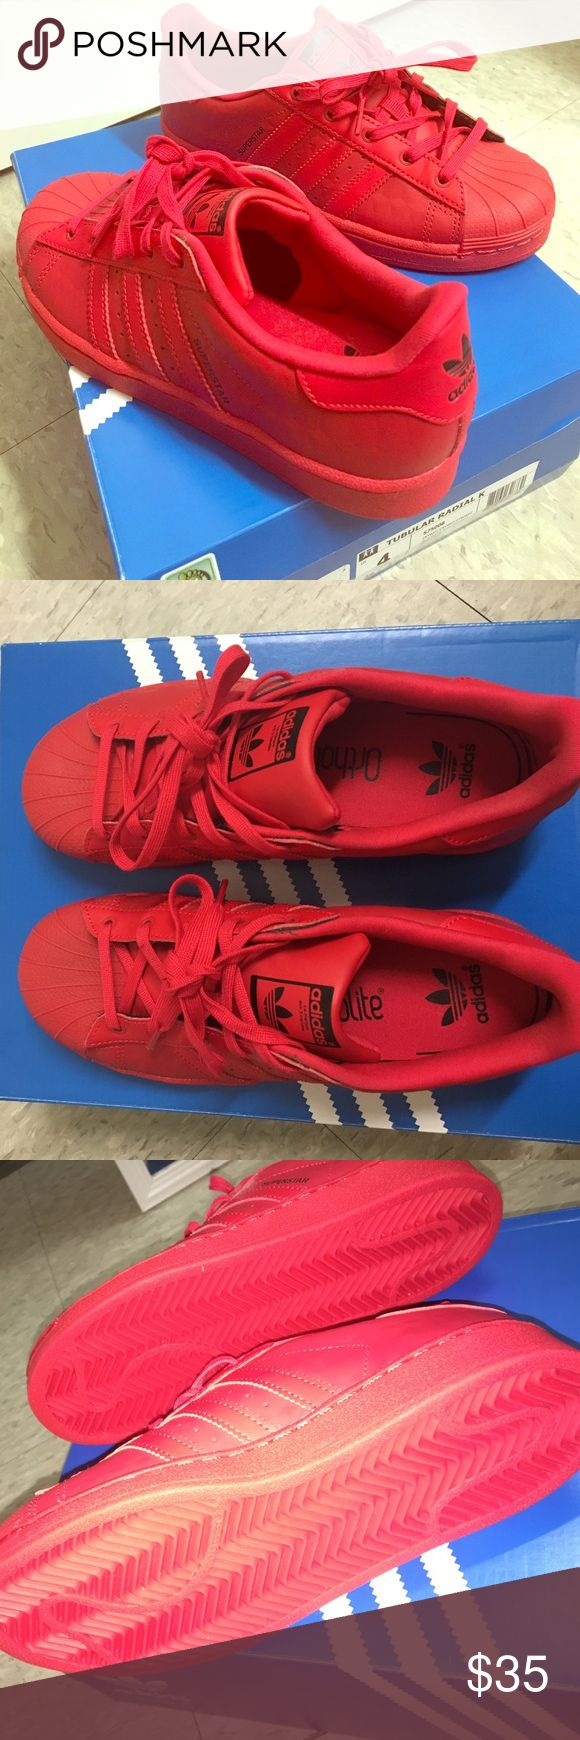 NEVER WORN ALL-RED ADIDAS SUPERSTAR  New Never worn Addidas Tubular Radial with Ortholite  ||   Super cute shoes! Look like the classic Addidas but they have a cool diamond-ish effect if you look closely at pictures. Unfortunately too small for me. Kids/Men's size 4 - Women's Size 6. Price is negotiable! Just want them gone, offers accepted. Box included if requested. Adidas Shoes Sneakers